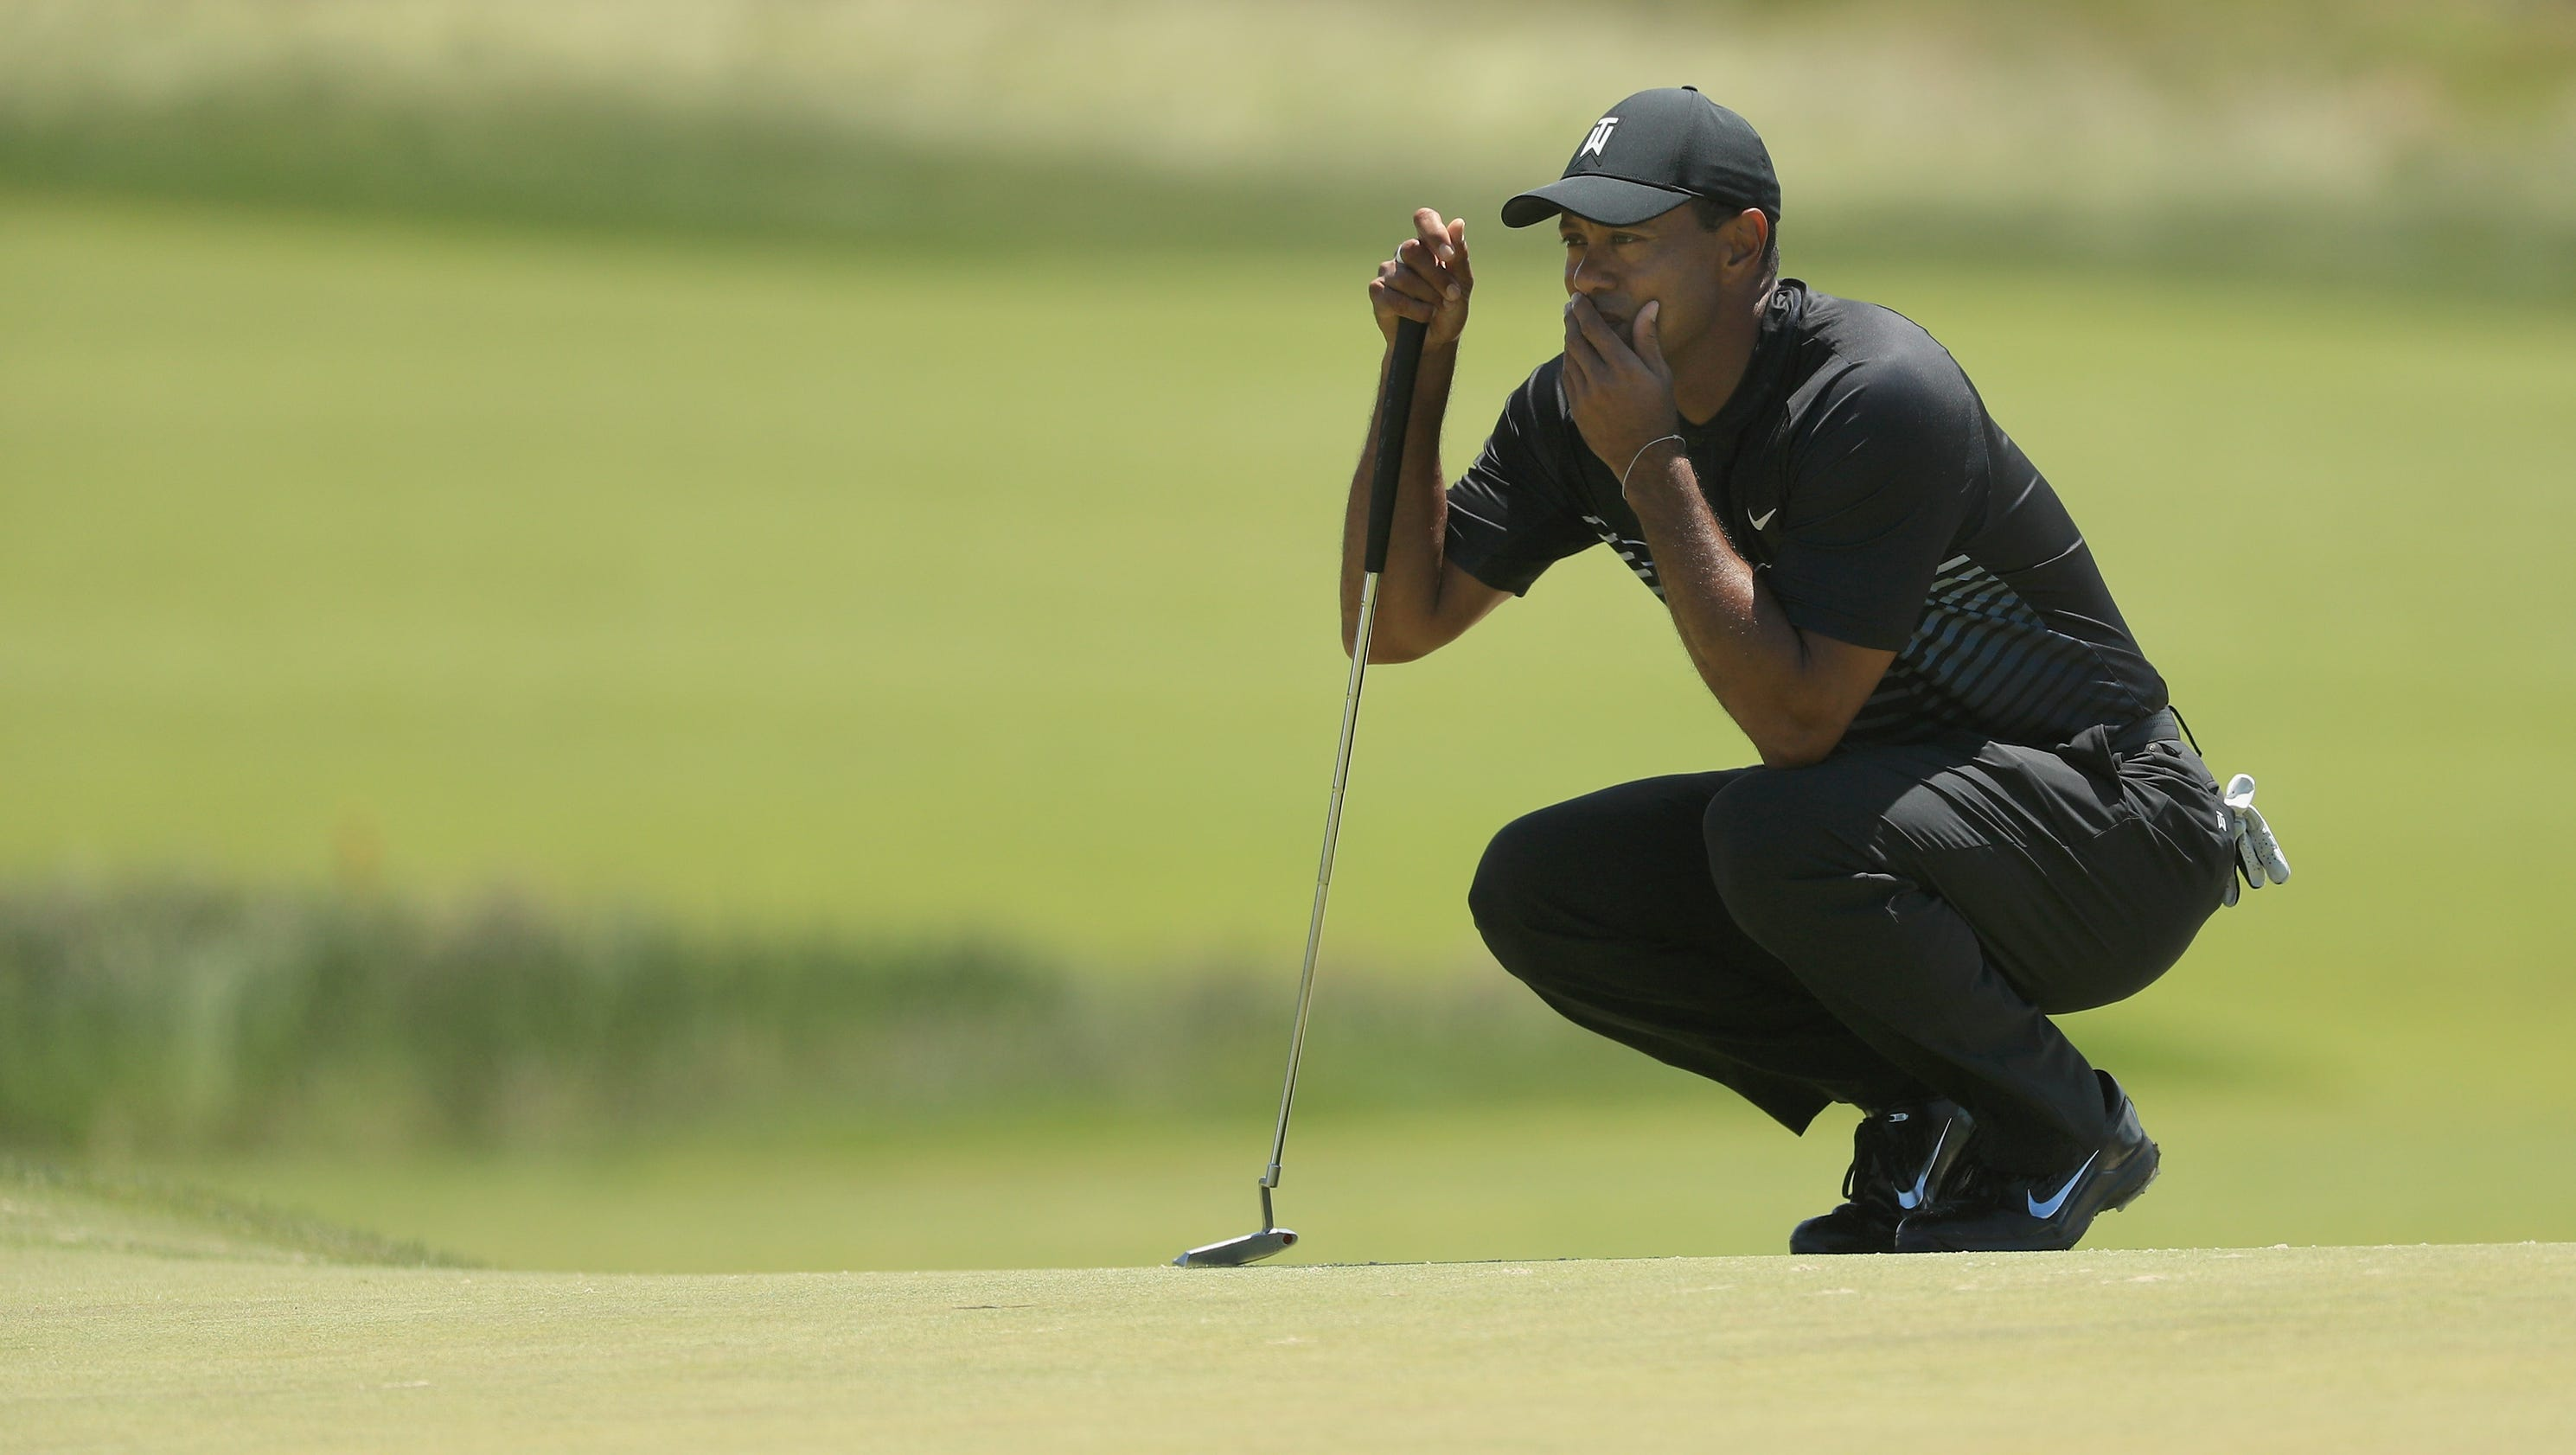 u s  open  tiger woods needs a reality check after latest